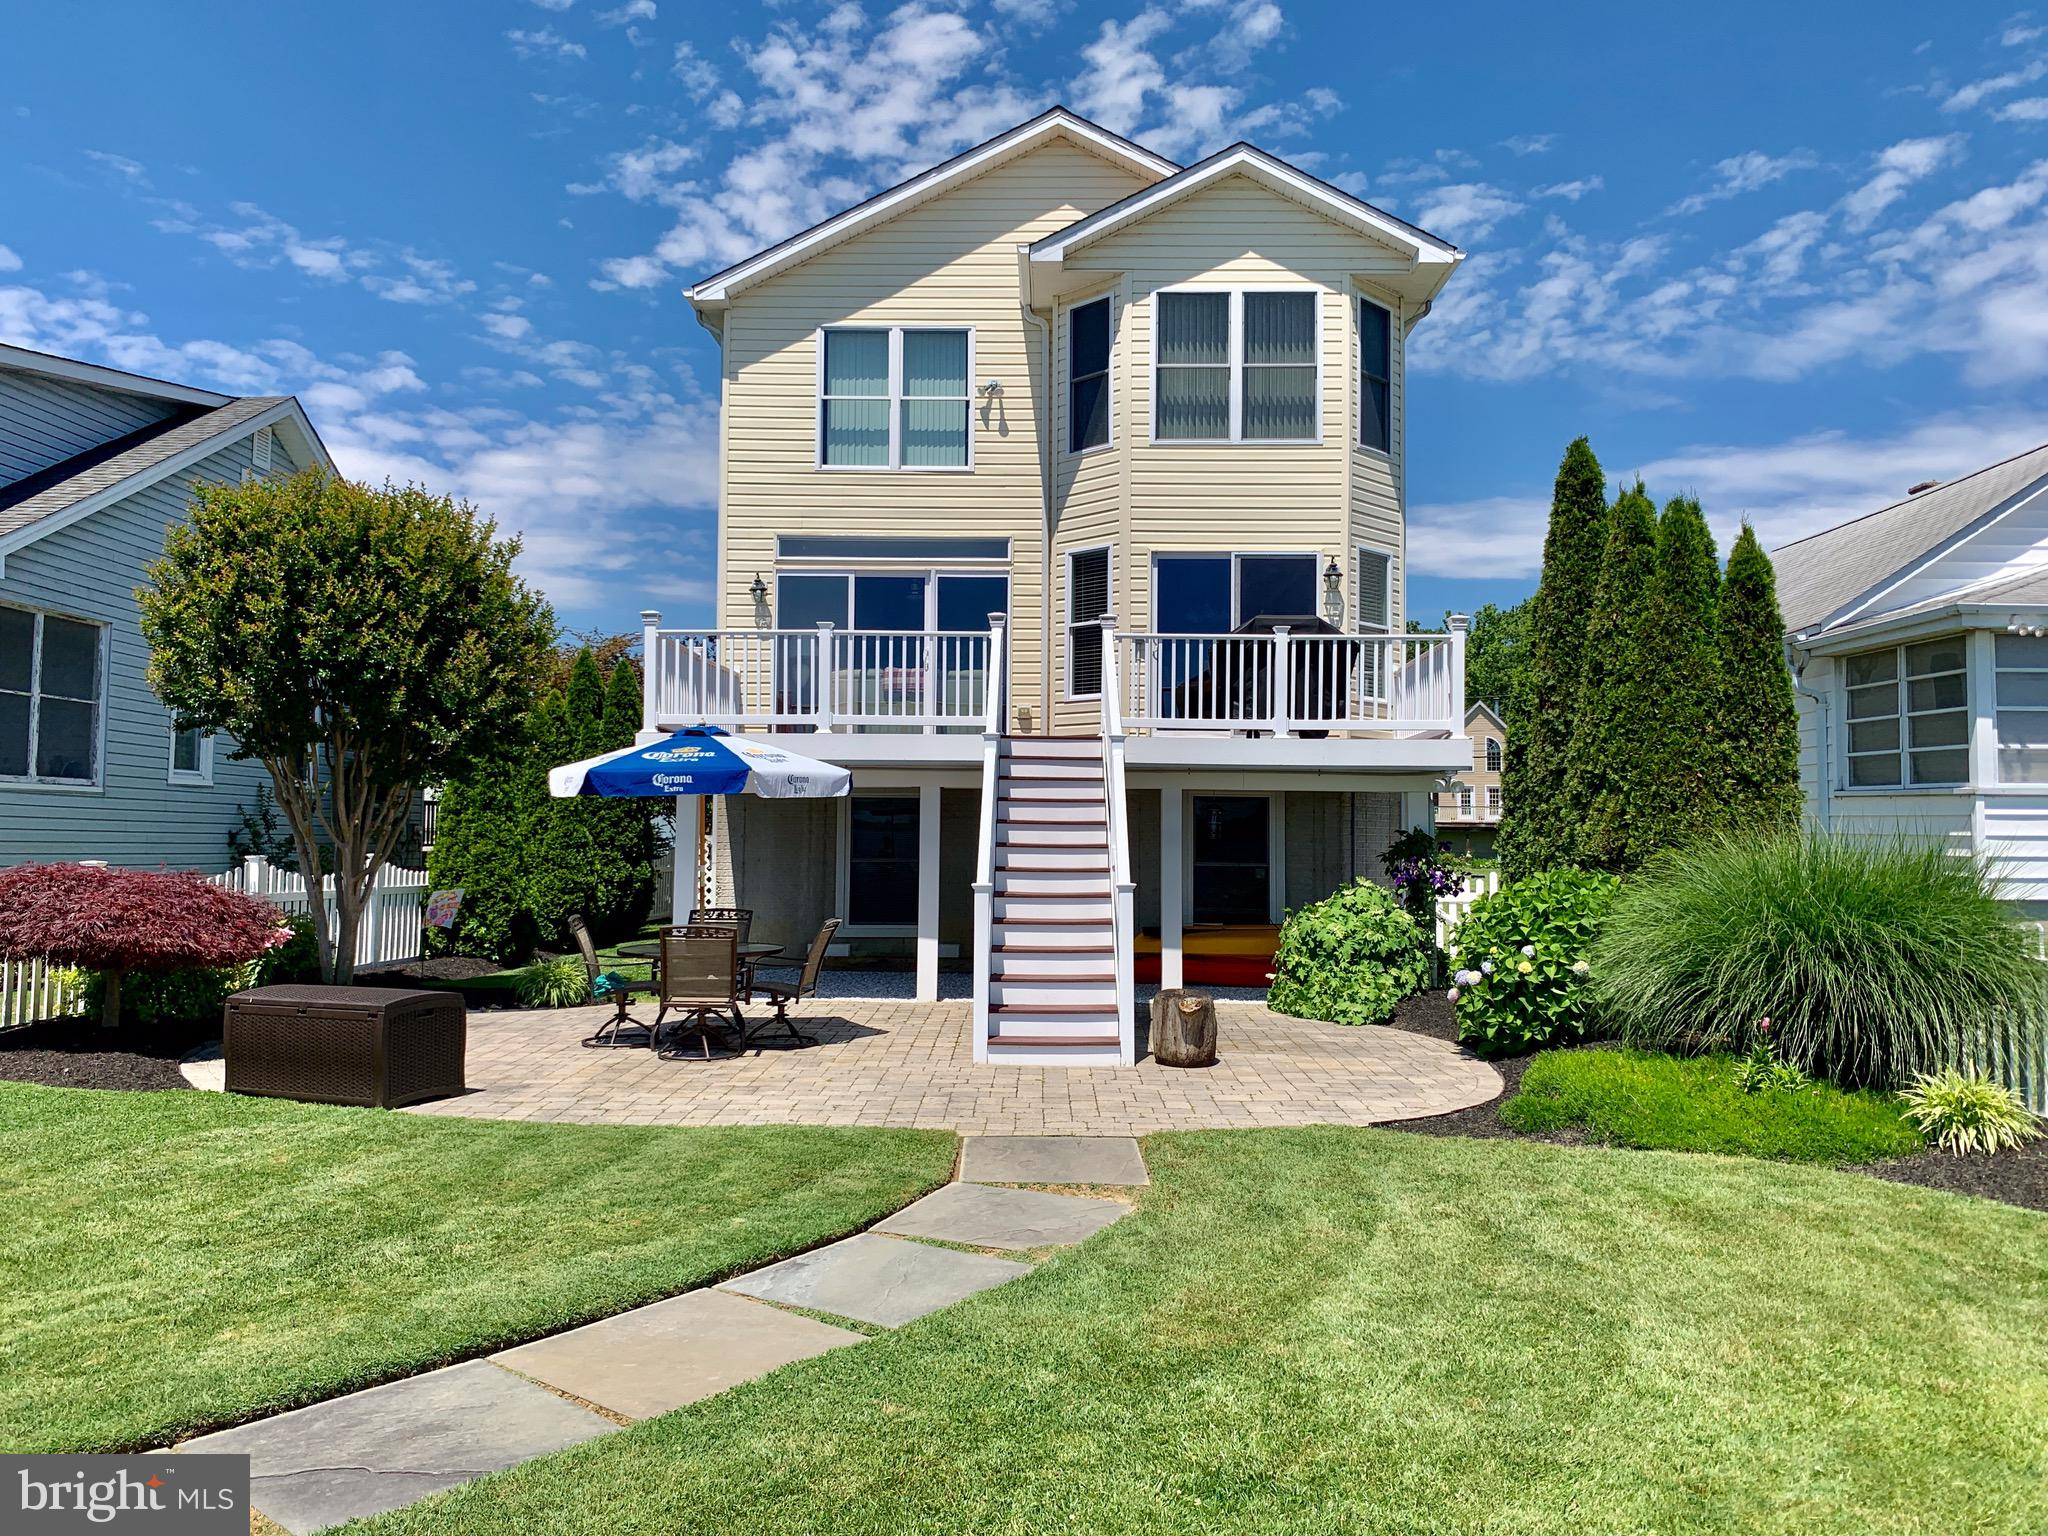 *Waterfront*Check out this move-in ready Waterfront home with Million Dollar Views! 4-5 Bedrooms 3.5